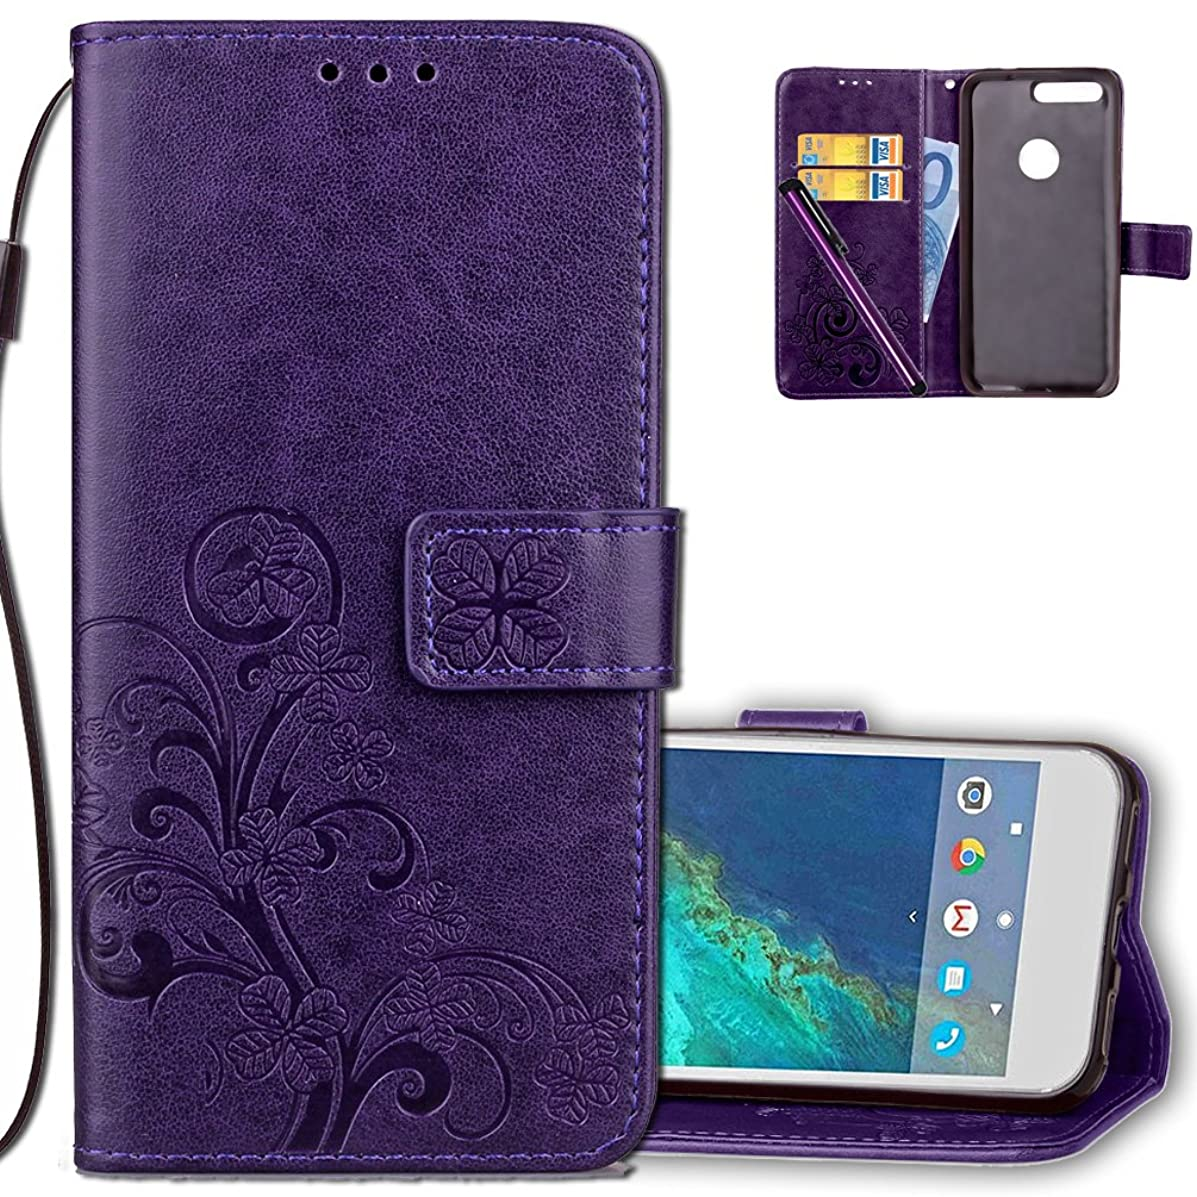 Google Pixel Wallet Case Leather COTDINFORCA Premium PU Embossed Design Magnetic Closure Protective Cover with Card Slots for Google Pixel (2016). Luck Clover Purple